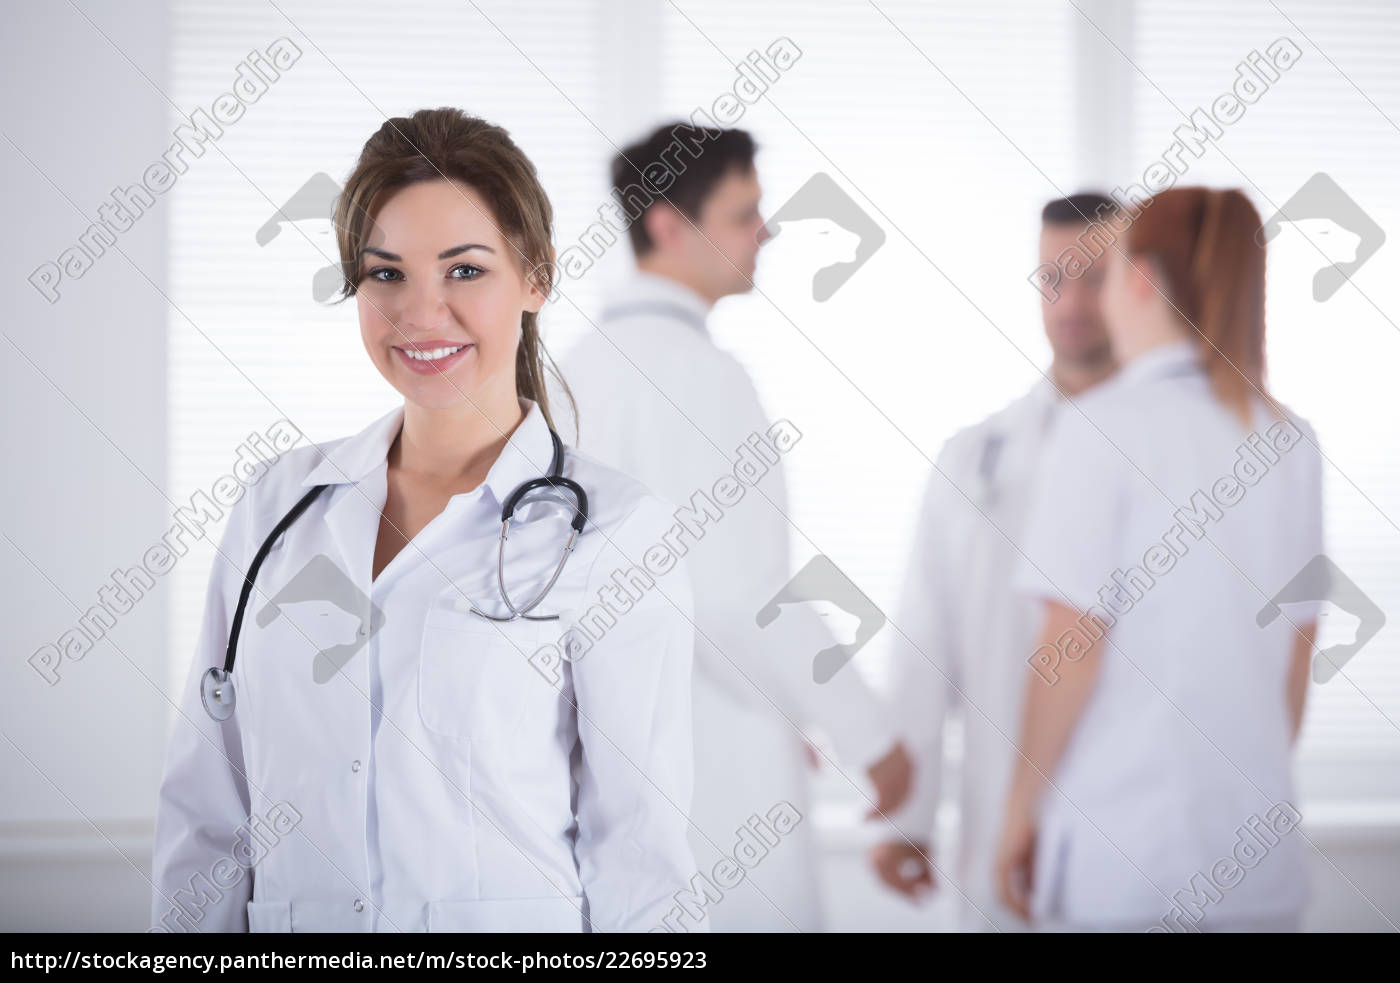 portrait, of, professional, female, doctor - 22695923